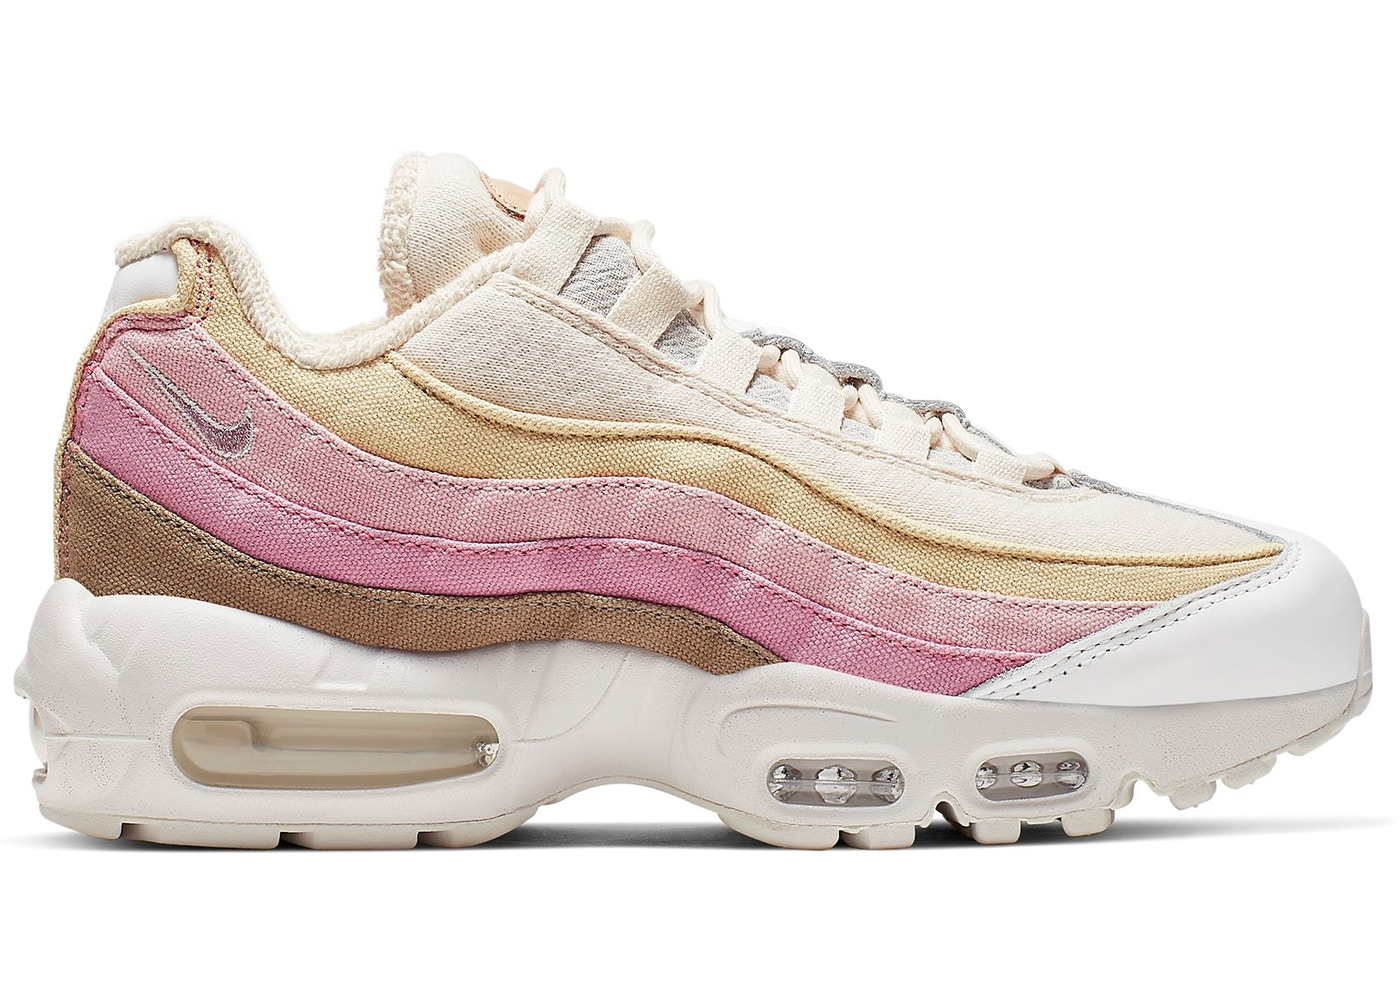 low priced 2be64 99e56 Air Max 95 Plant Color Collection Beige (W) - CD7142-700